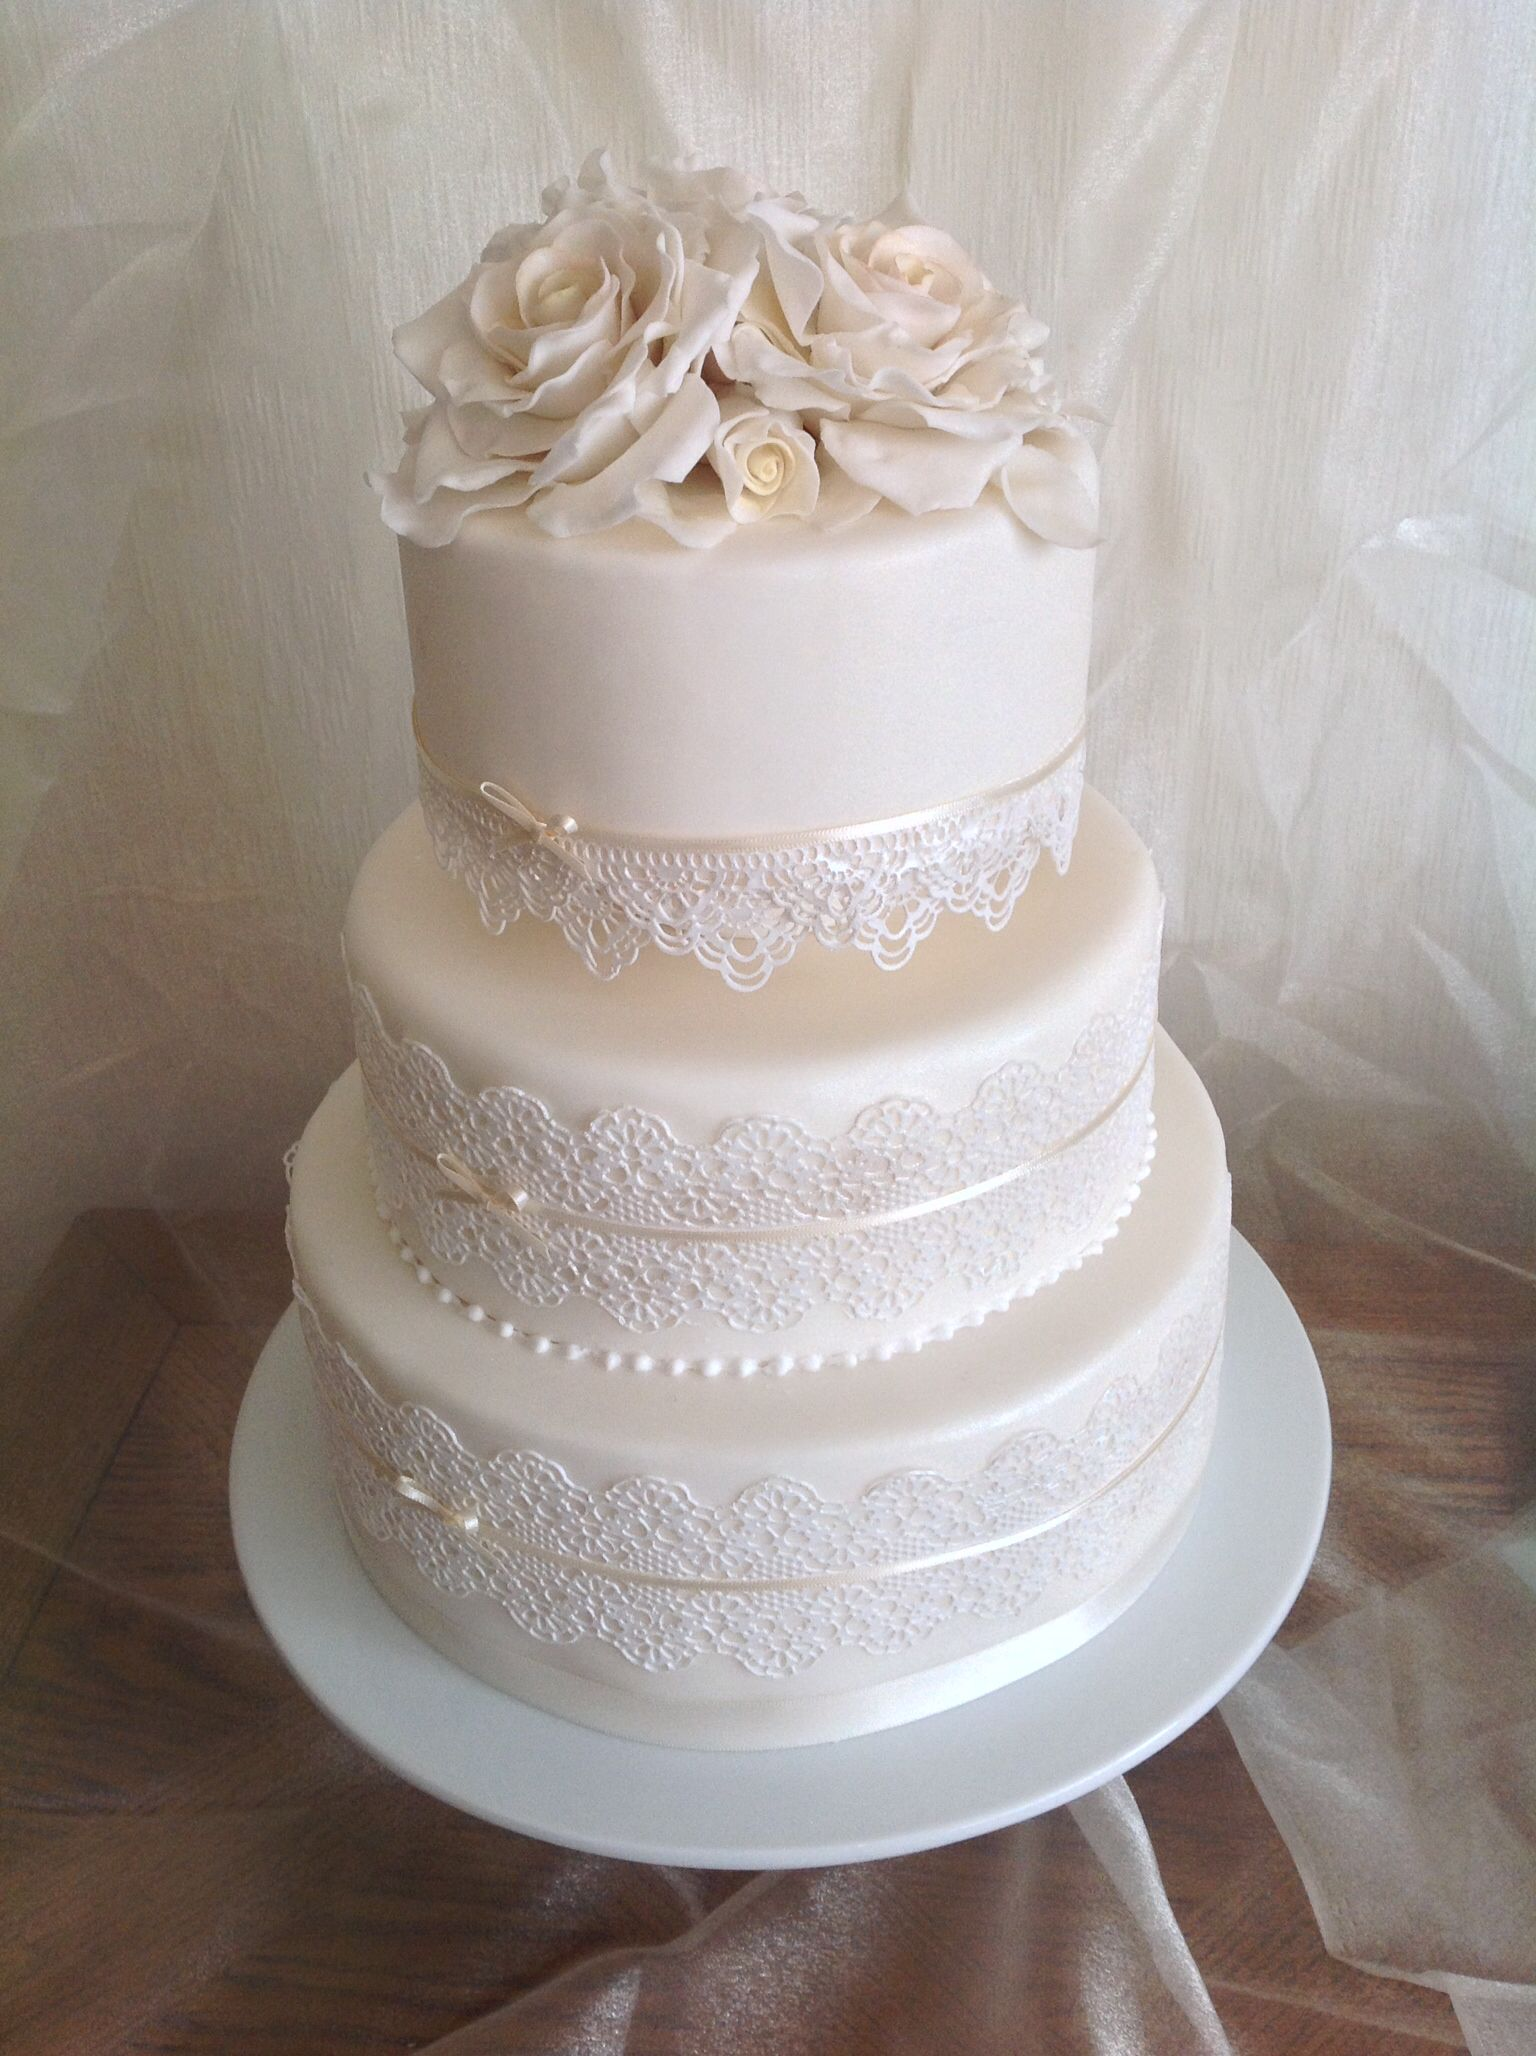 Wedding Cake With Edible Lace And Sugar Roses Www